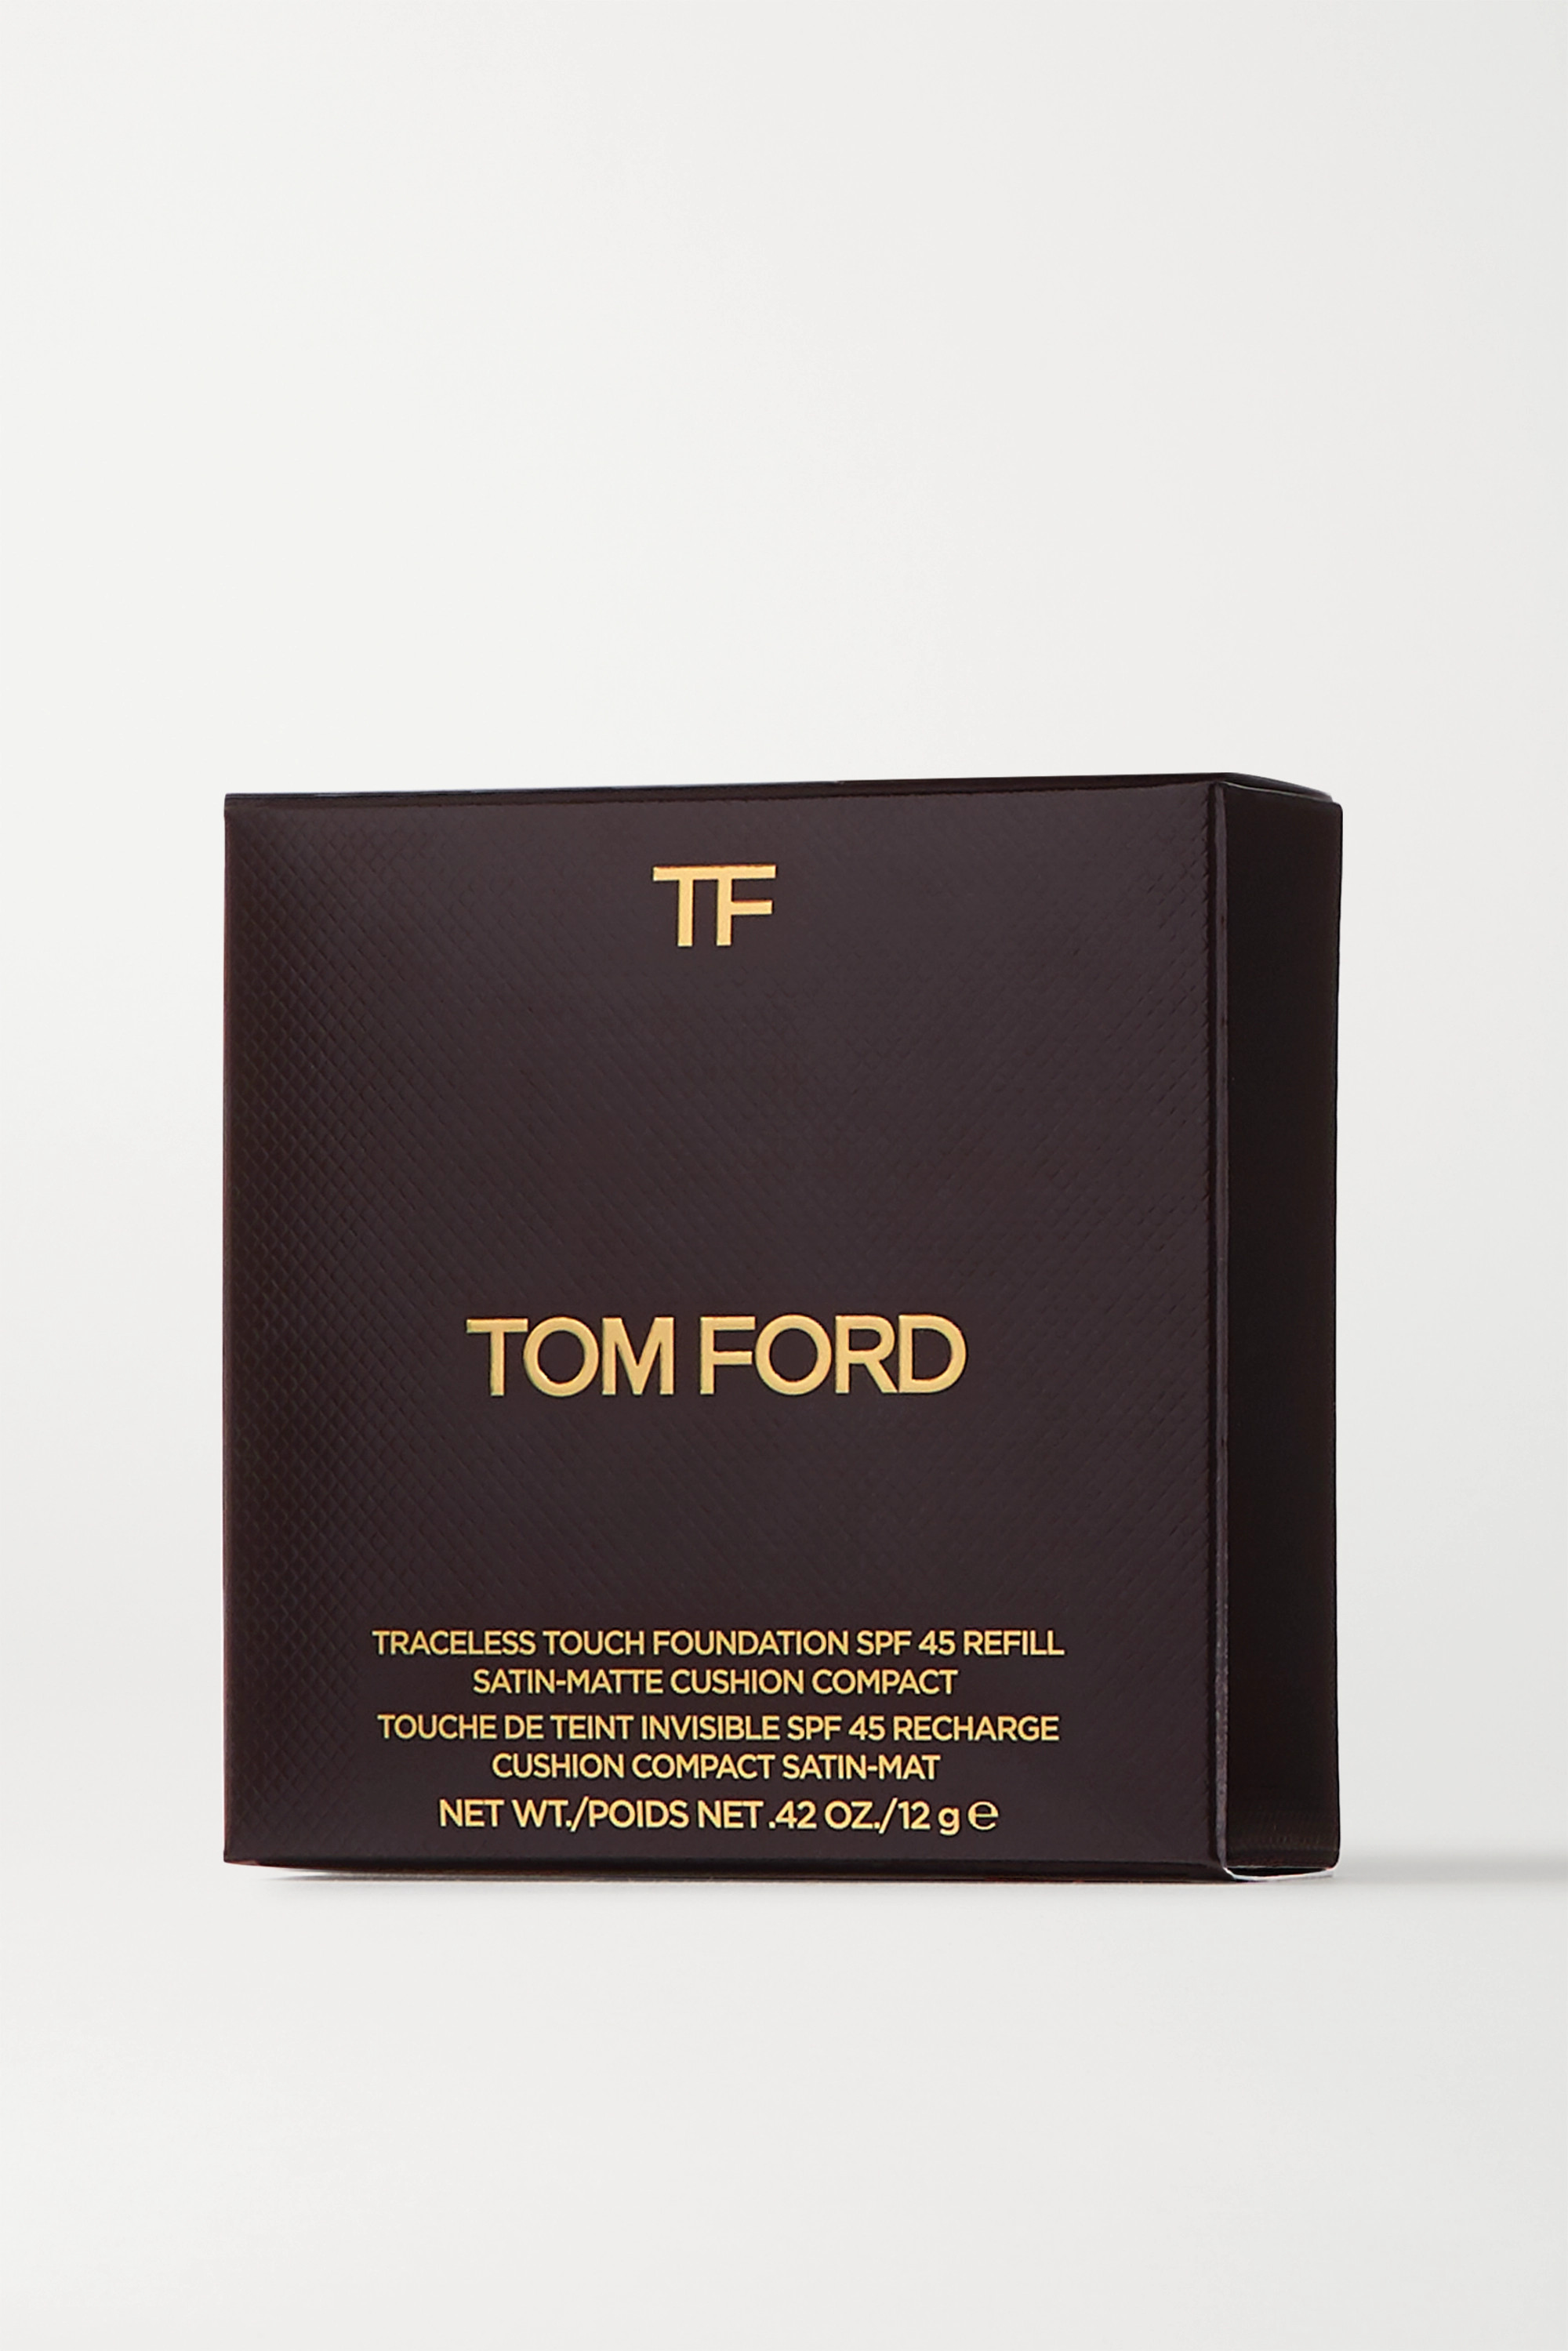 TOM FORD BEAUTY Traceless Touch Cushion Foundation Refill SPF45 - 1.3 Nude Ivory, 12g